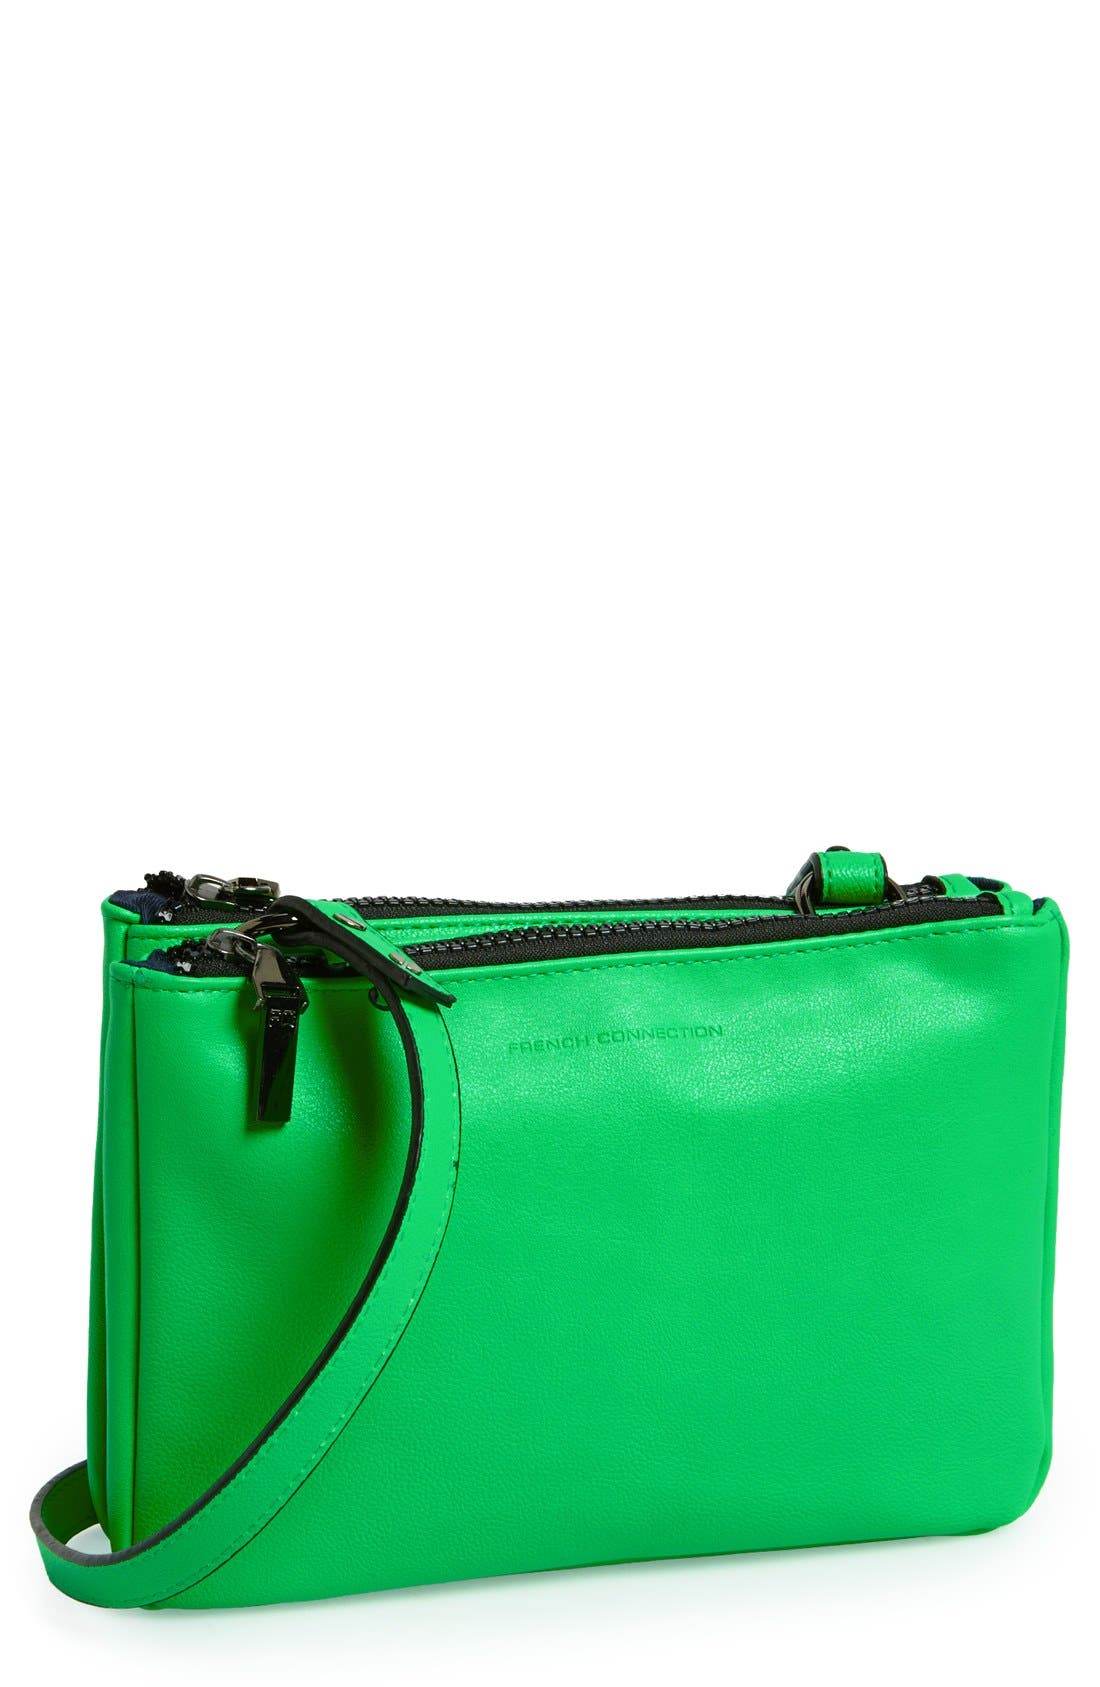 Alternate Image 1 Selected - French Connection 'Mini Gypsy' Faux Leather Crossbody Bag